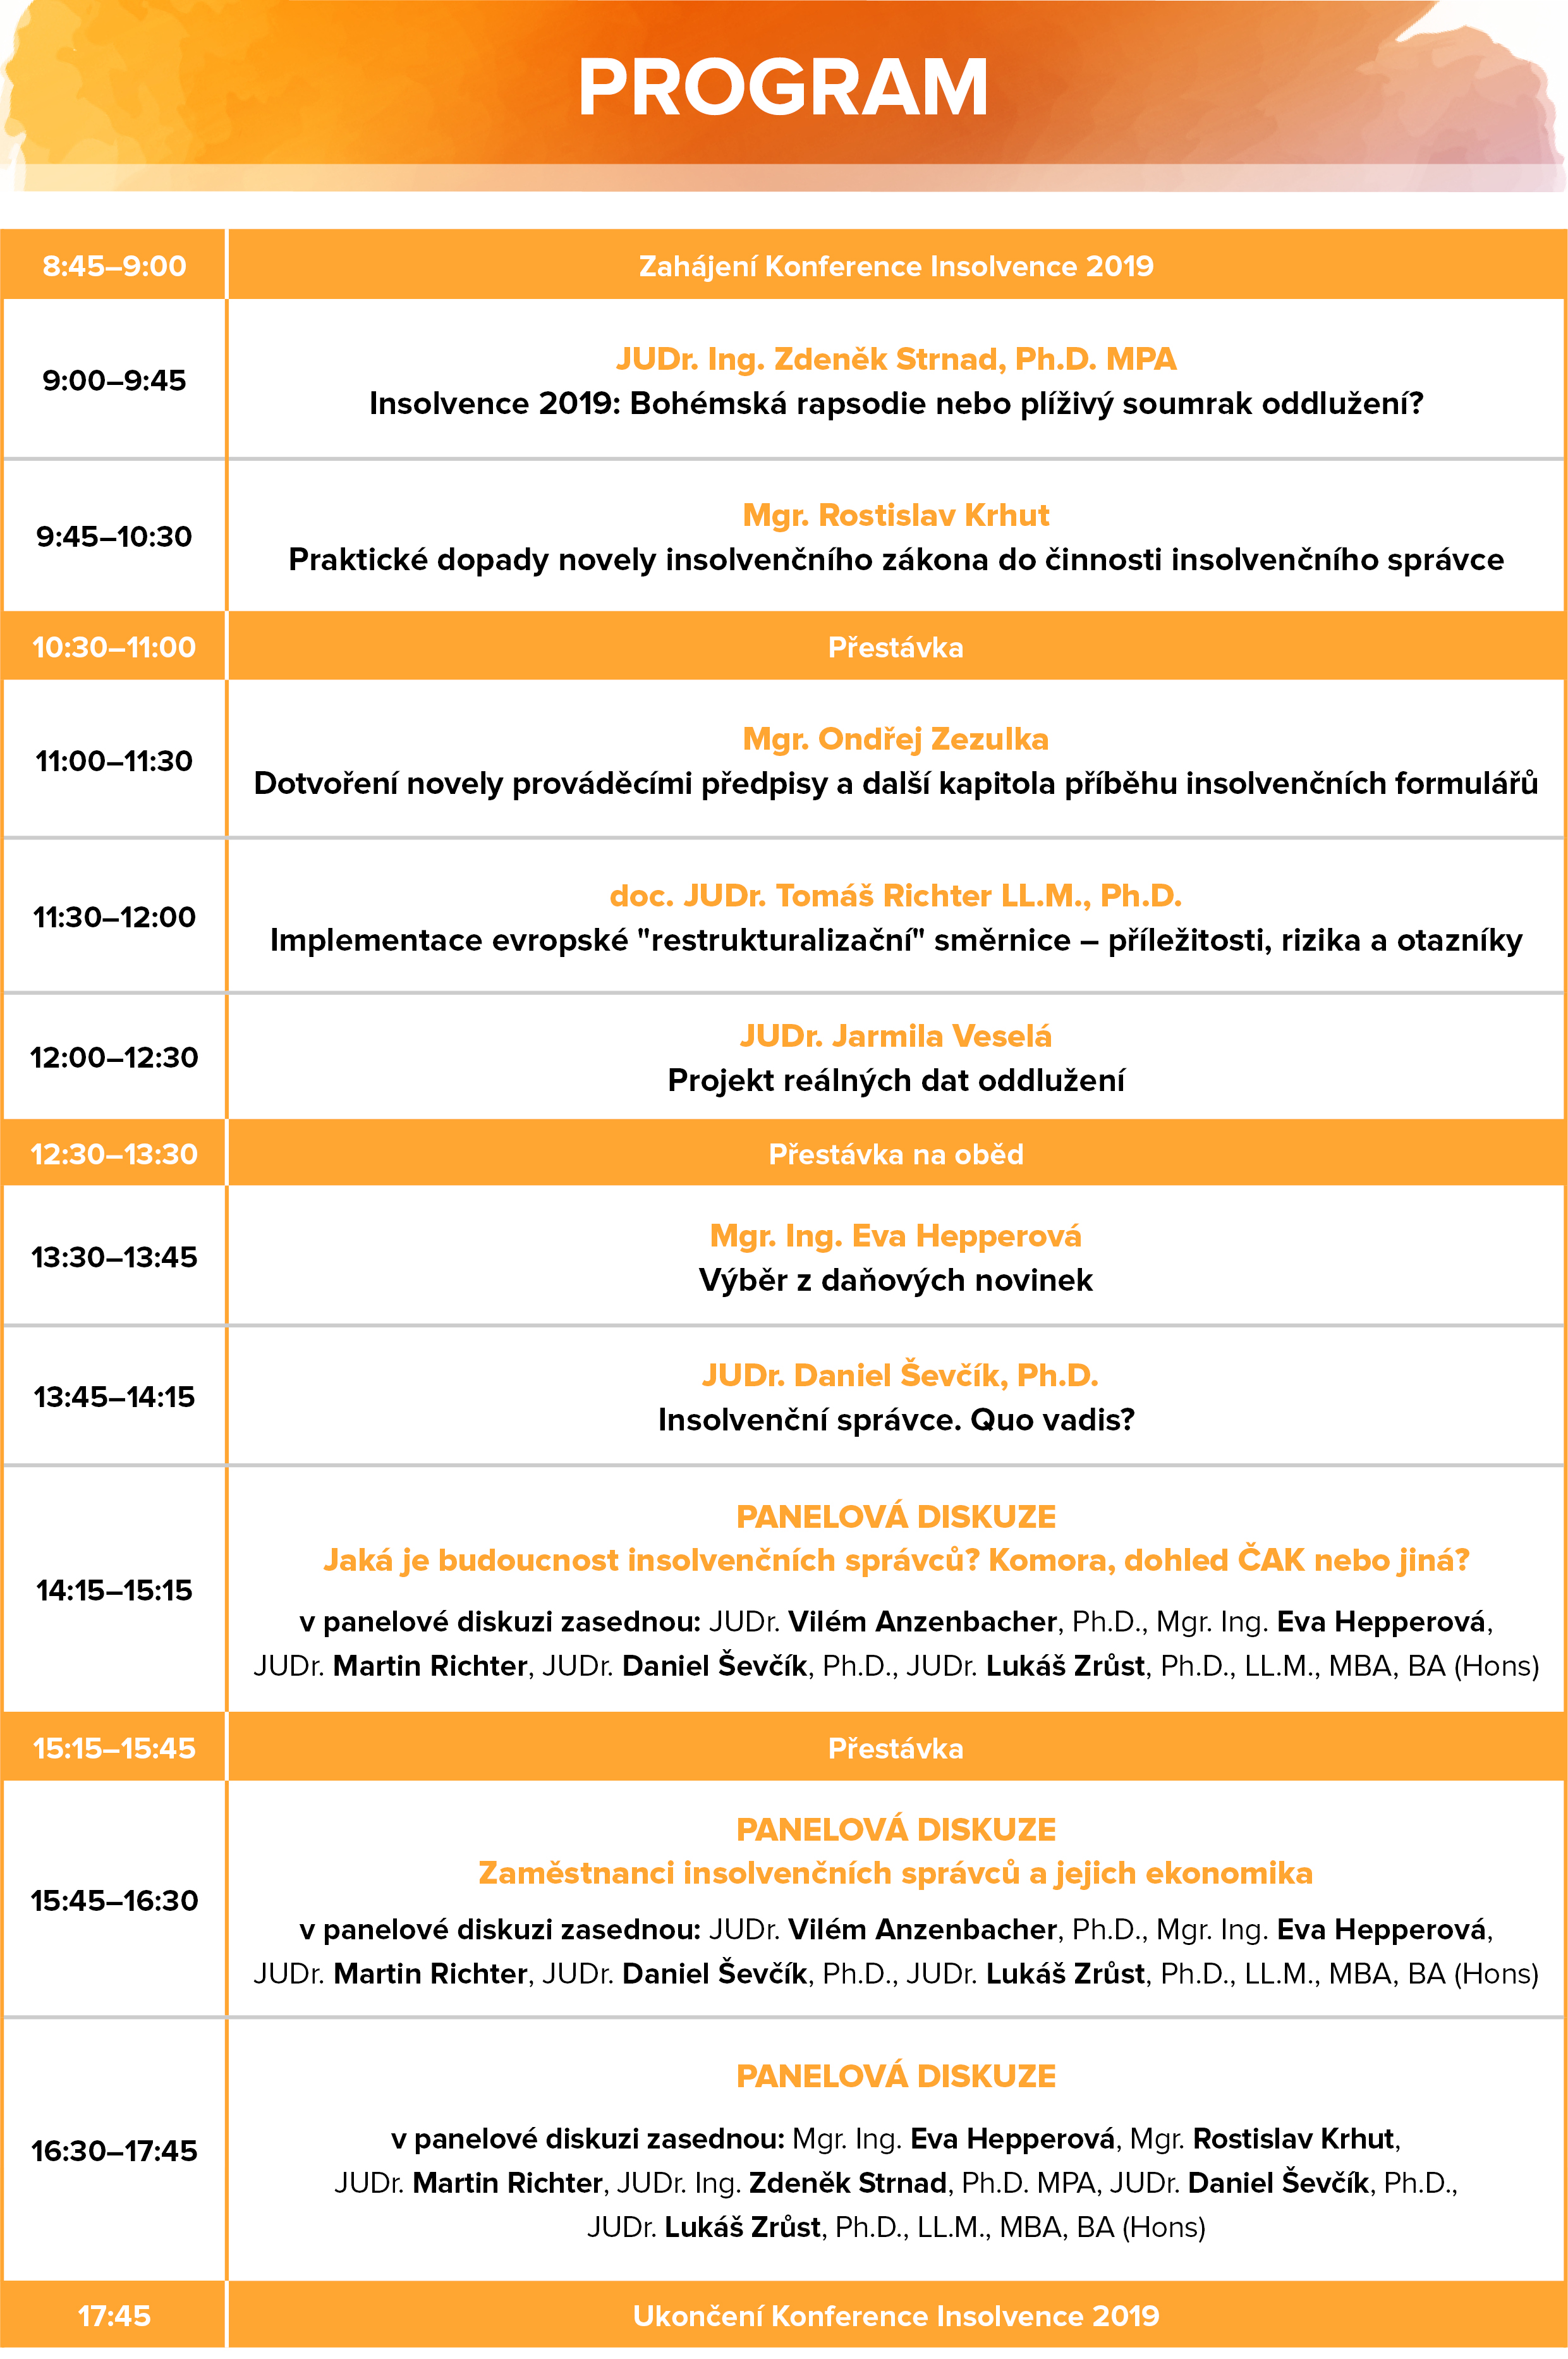 Konference Insolvence 2019 - Program